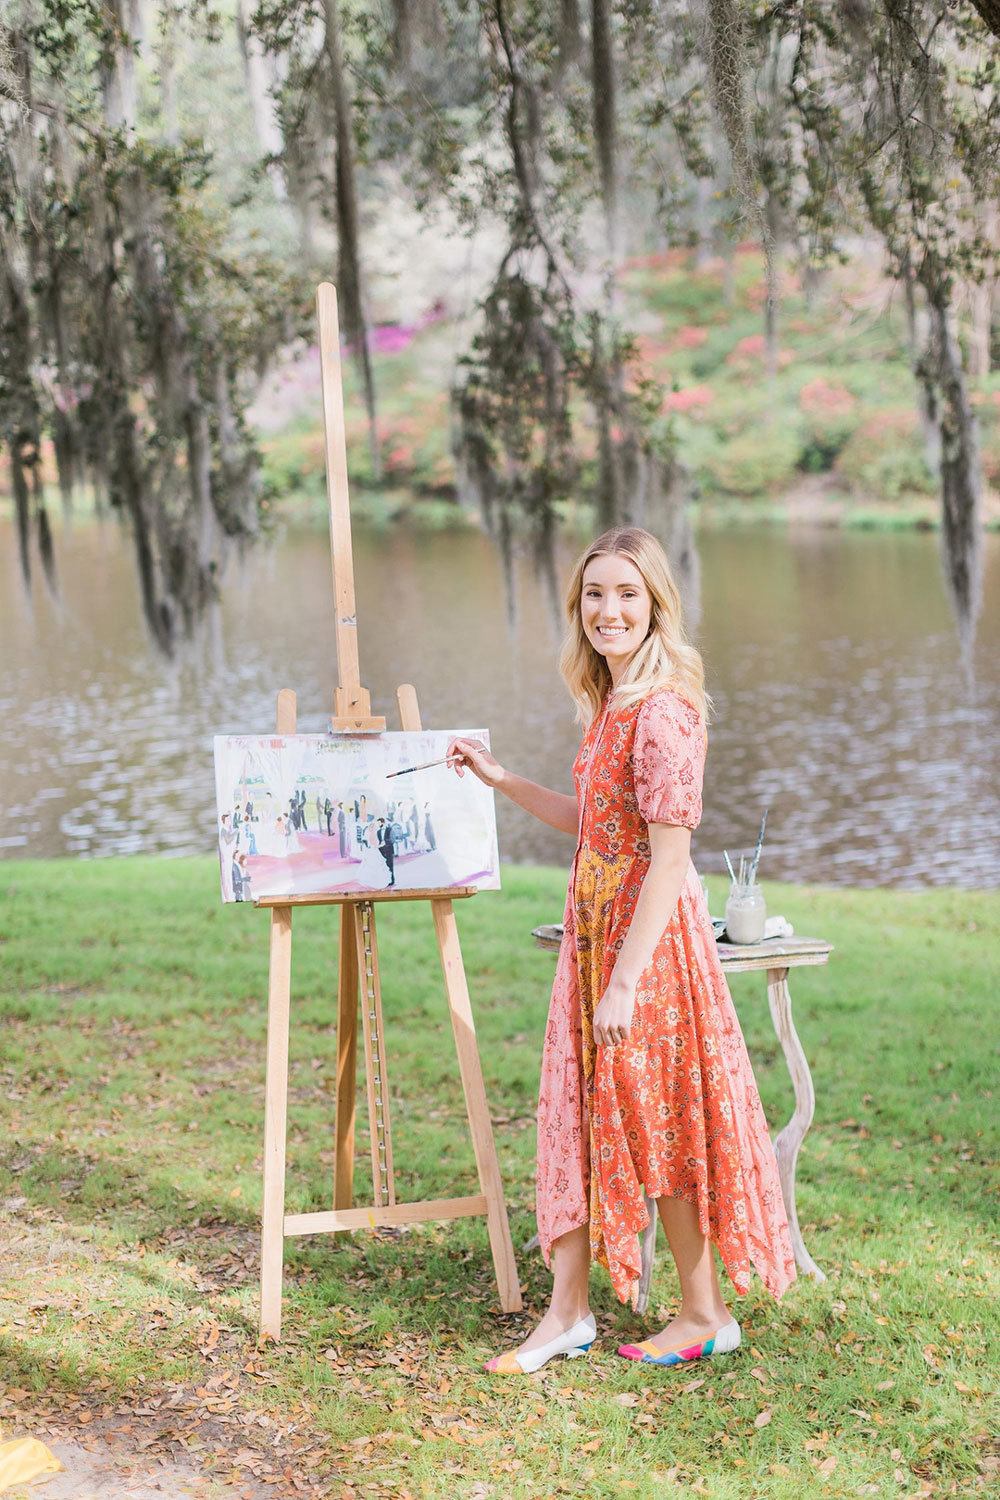 Paint by Chloe live wedding painter at Middleton Place, South Carolina